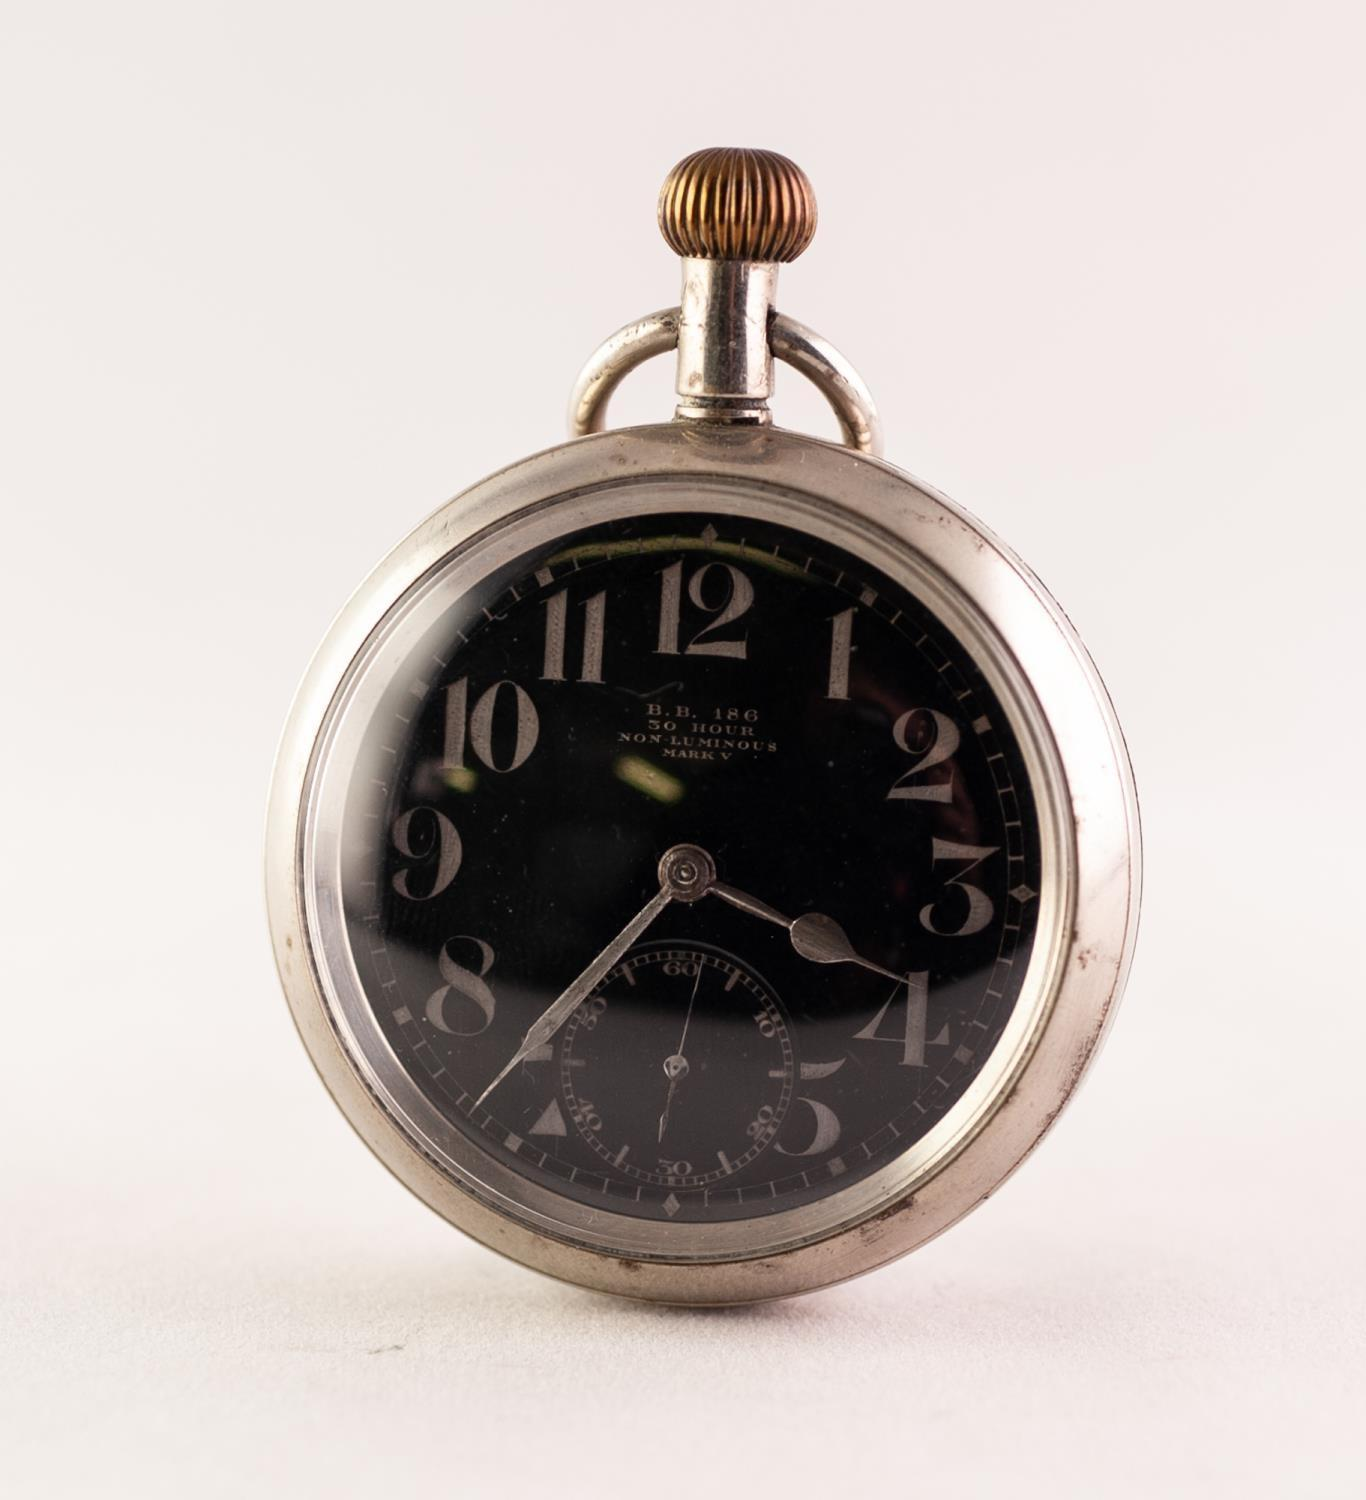 Lot 45 - A MILITARY ISSUE NICKEL CASED OPEN FACE POCKET WATCH, B.B. 186 Circular black dial with Arabic